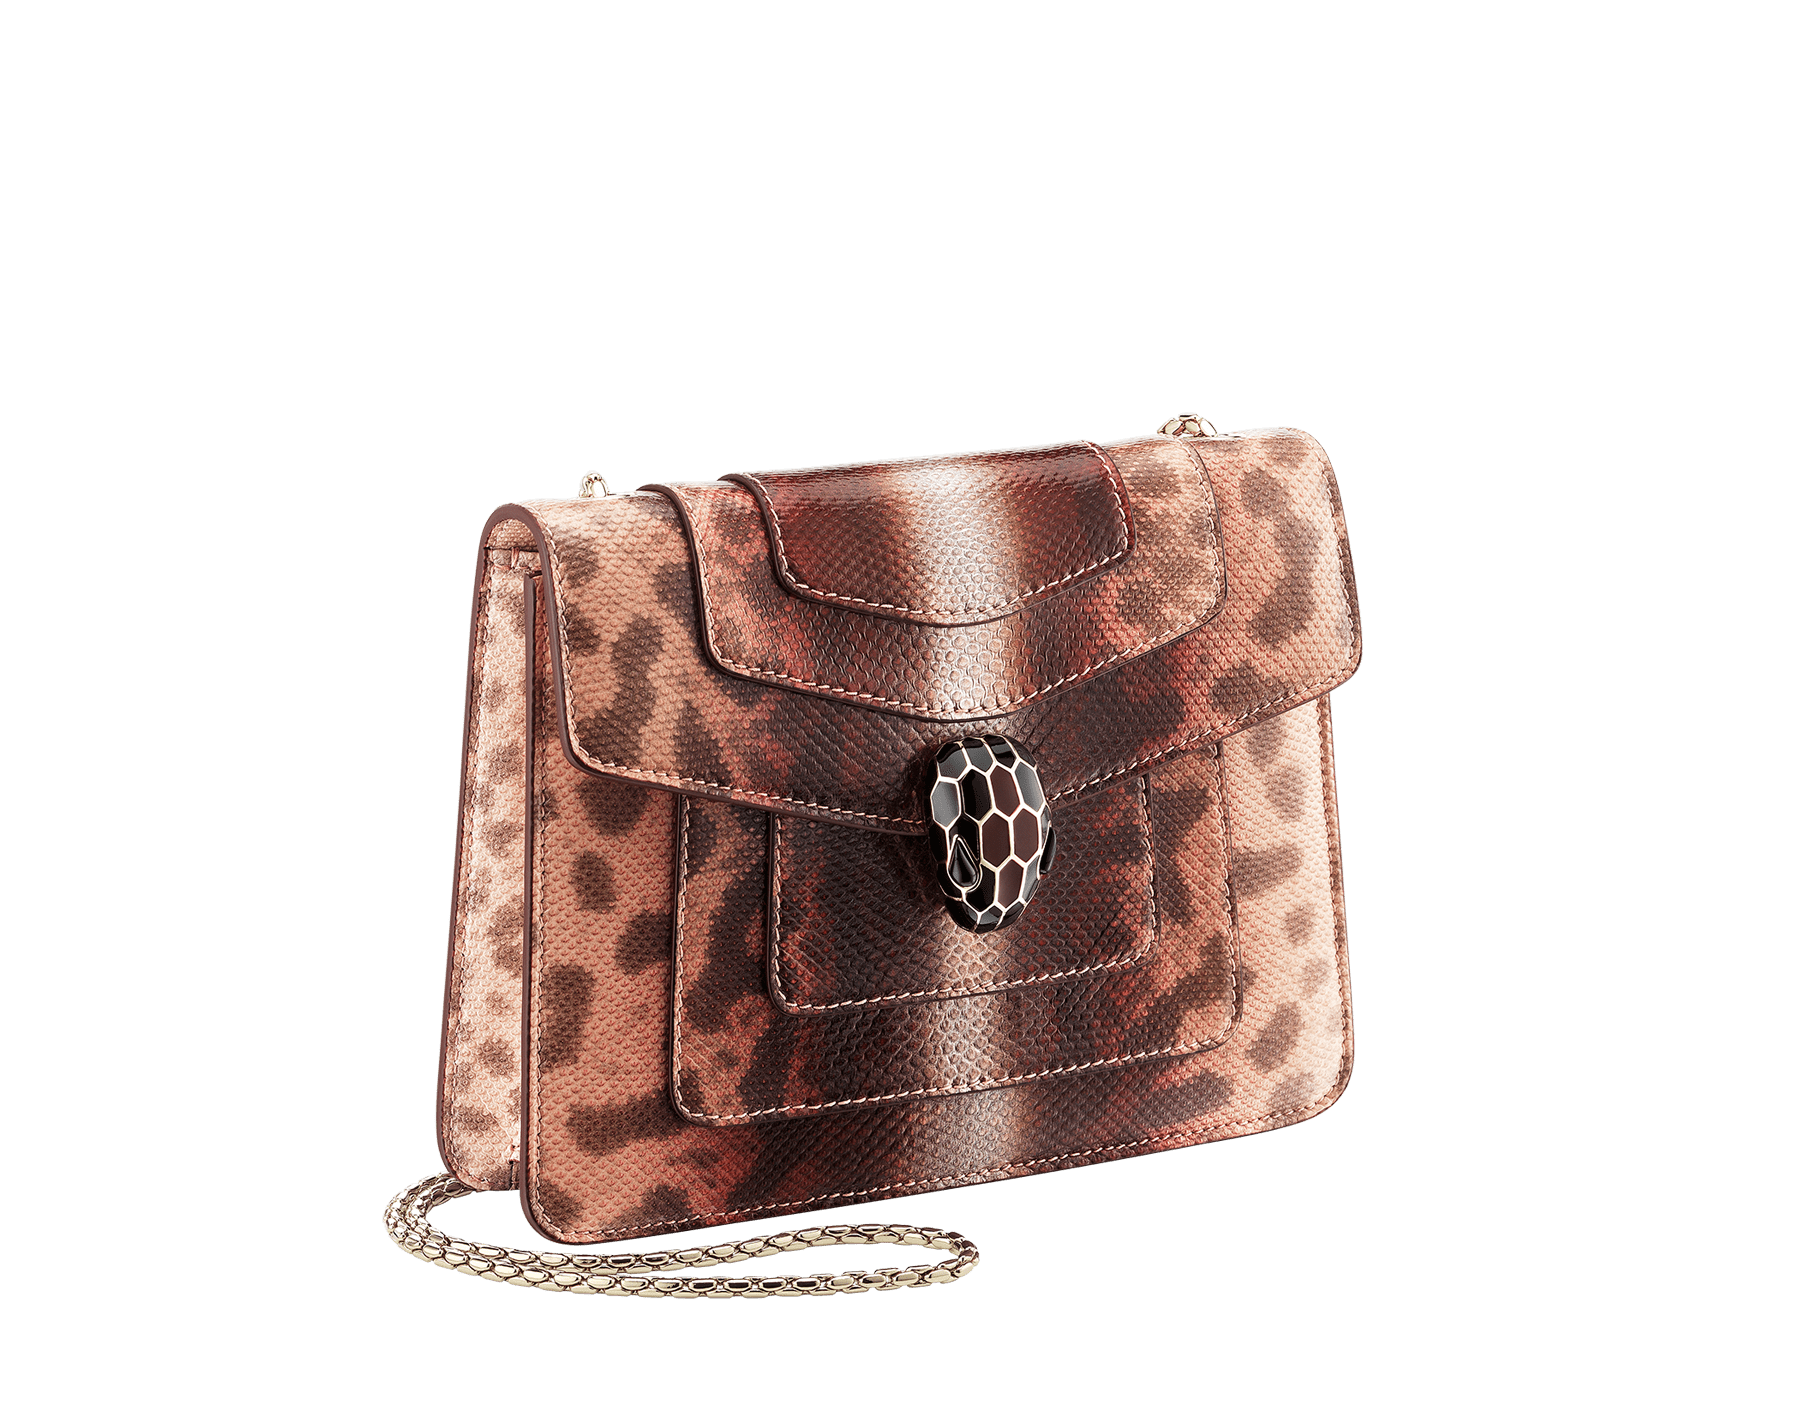 Serpenti Forever crossbody bag in rosa di francia Sahara karung skin. Iconic snakehead closure in light gold plated brass embellished with Roman garnet and black enamel and black onyx eyes. 289012 image 2